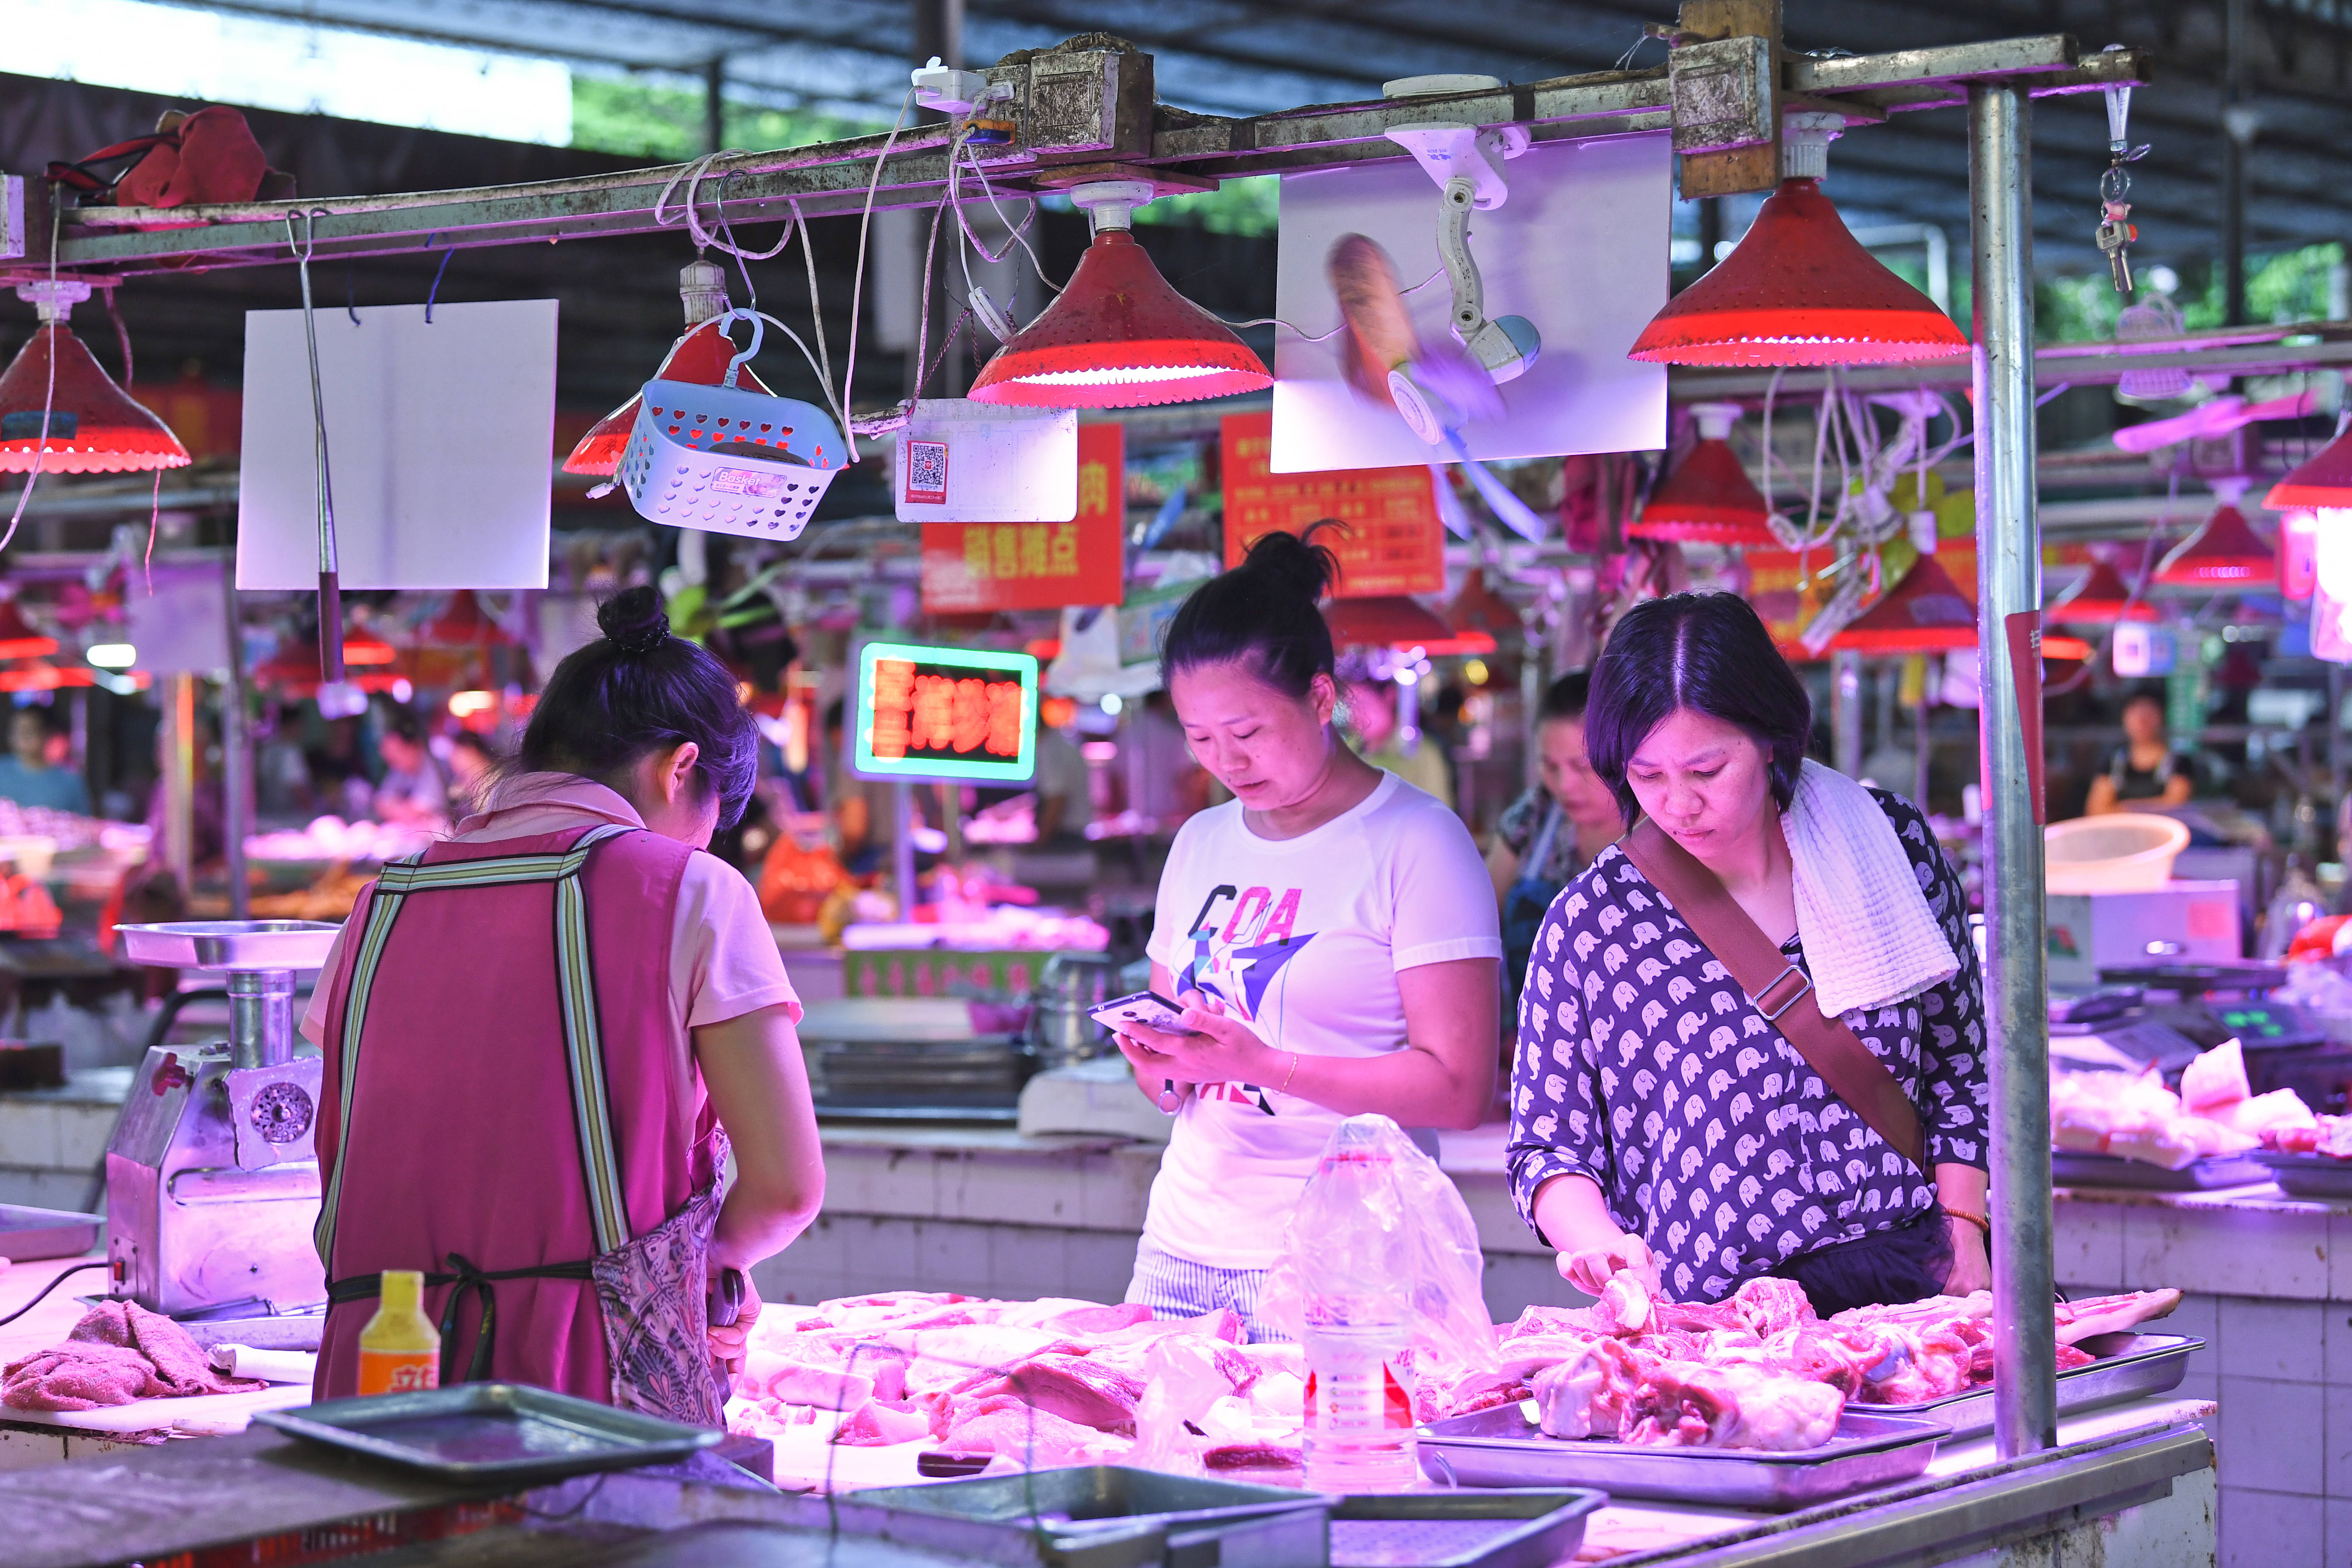 NANNING, CHINA - SEPTEMBER 03: Citizens purchase pork at a farm products market on September 3, 2019 in Nanning, Guangxi Zhuang Autonomous Region of China. (Photo by VCG/VCG via Getty Images)